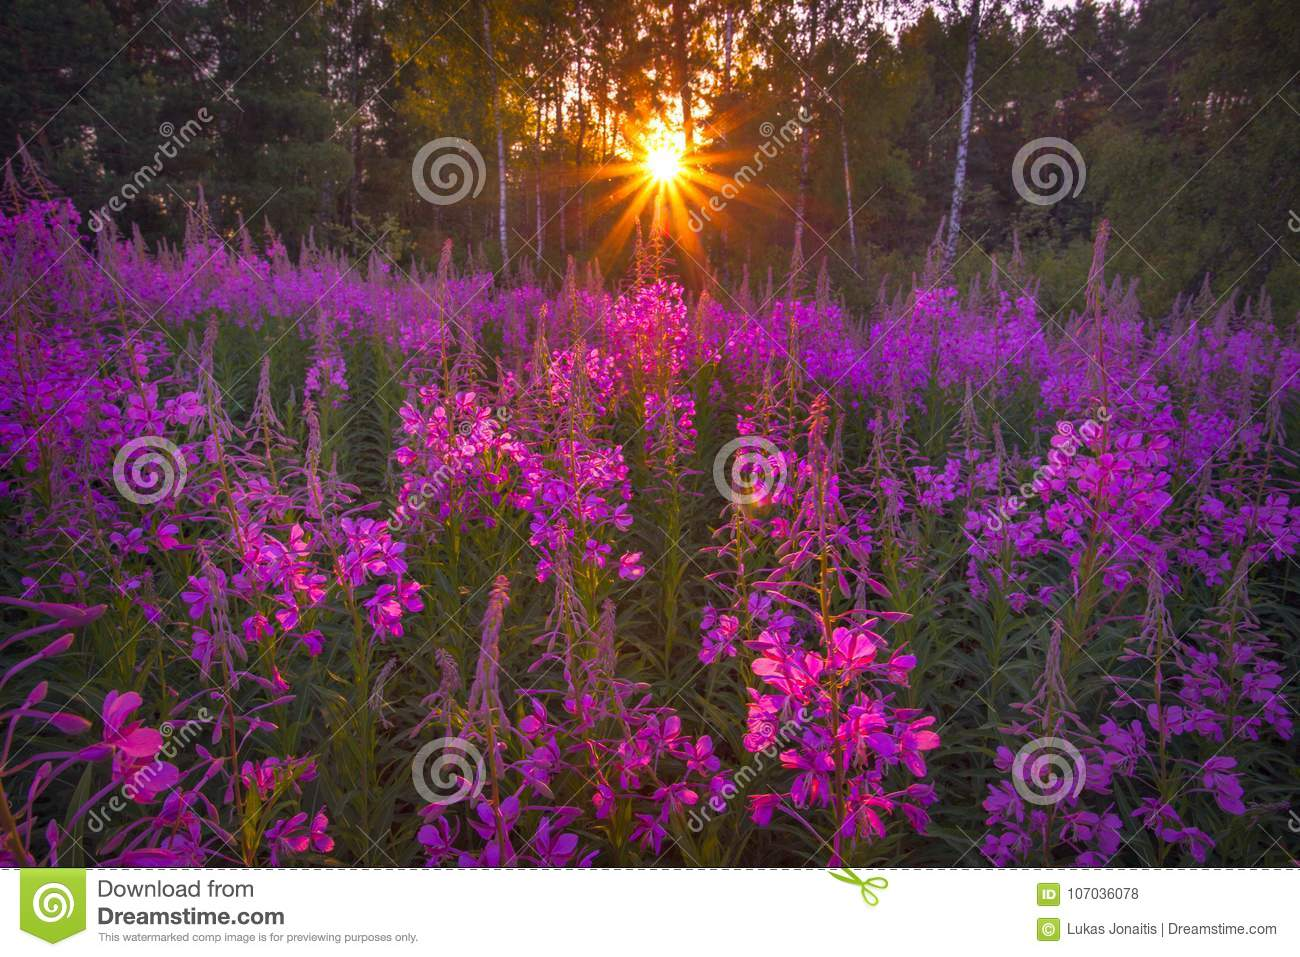 Sunset In The Field Of Flowers Stock Photo Image Of Growth Harvest 107036078